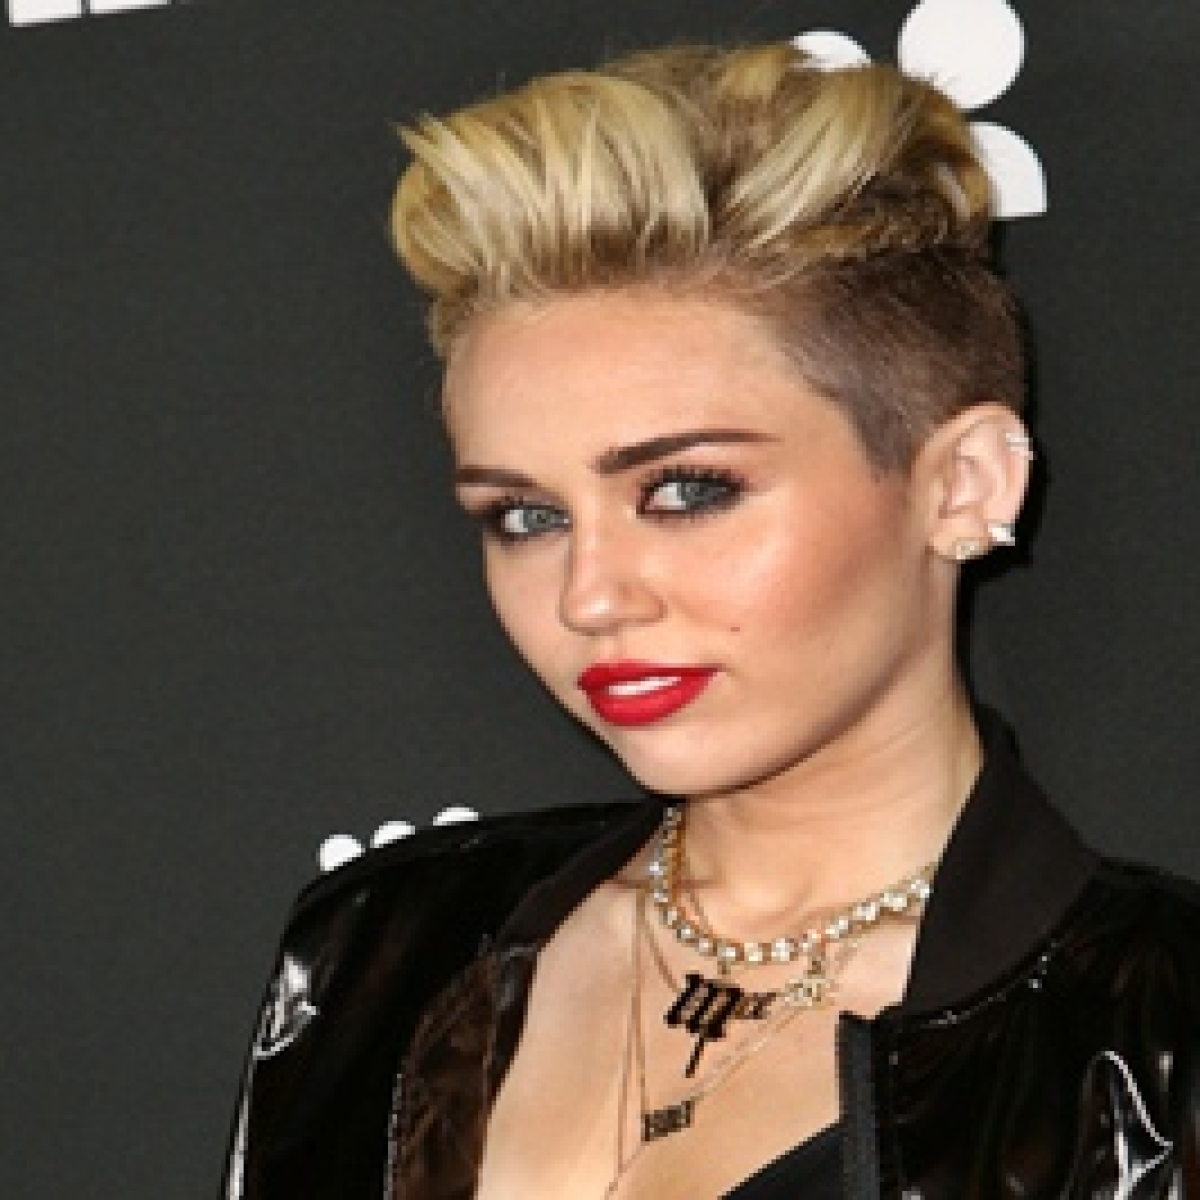 I am not a liar: Miley Cyrus clears the air around cheating rumours